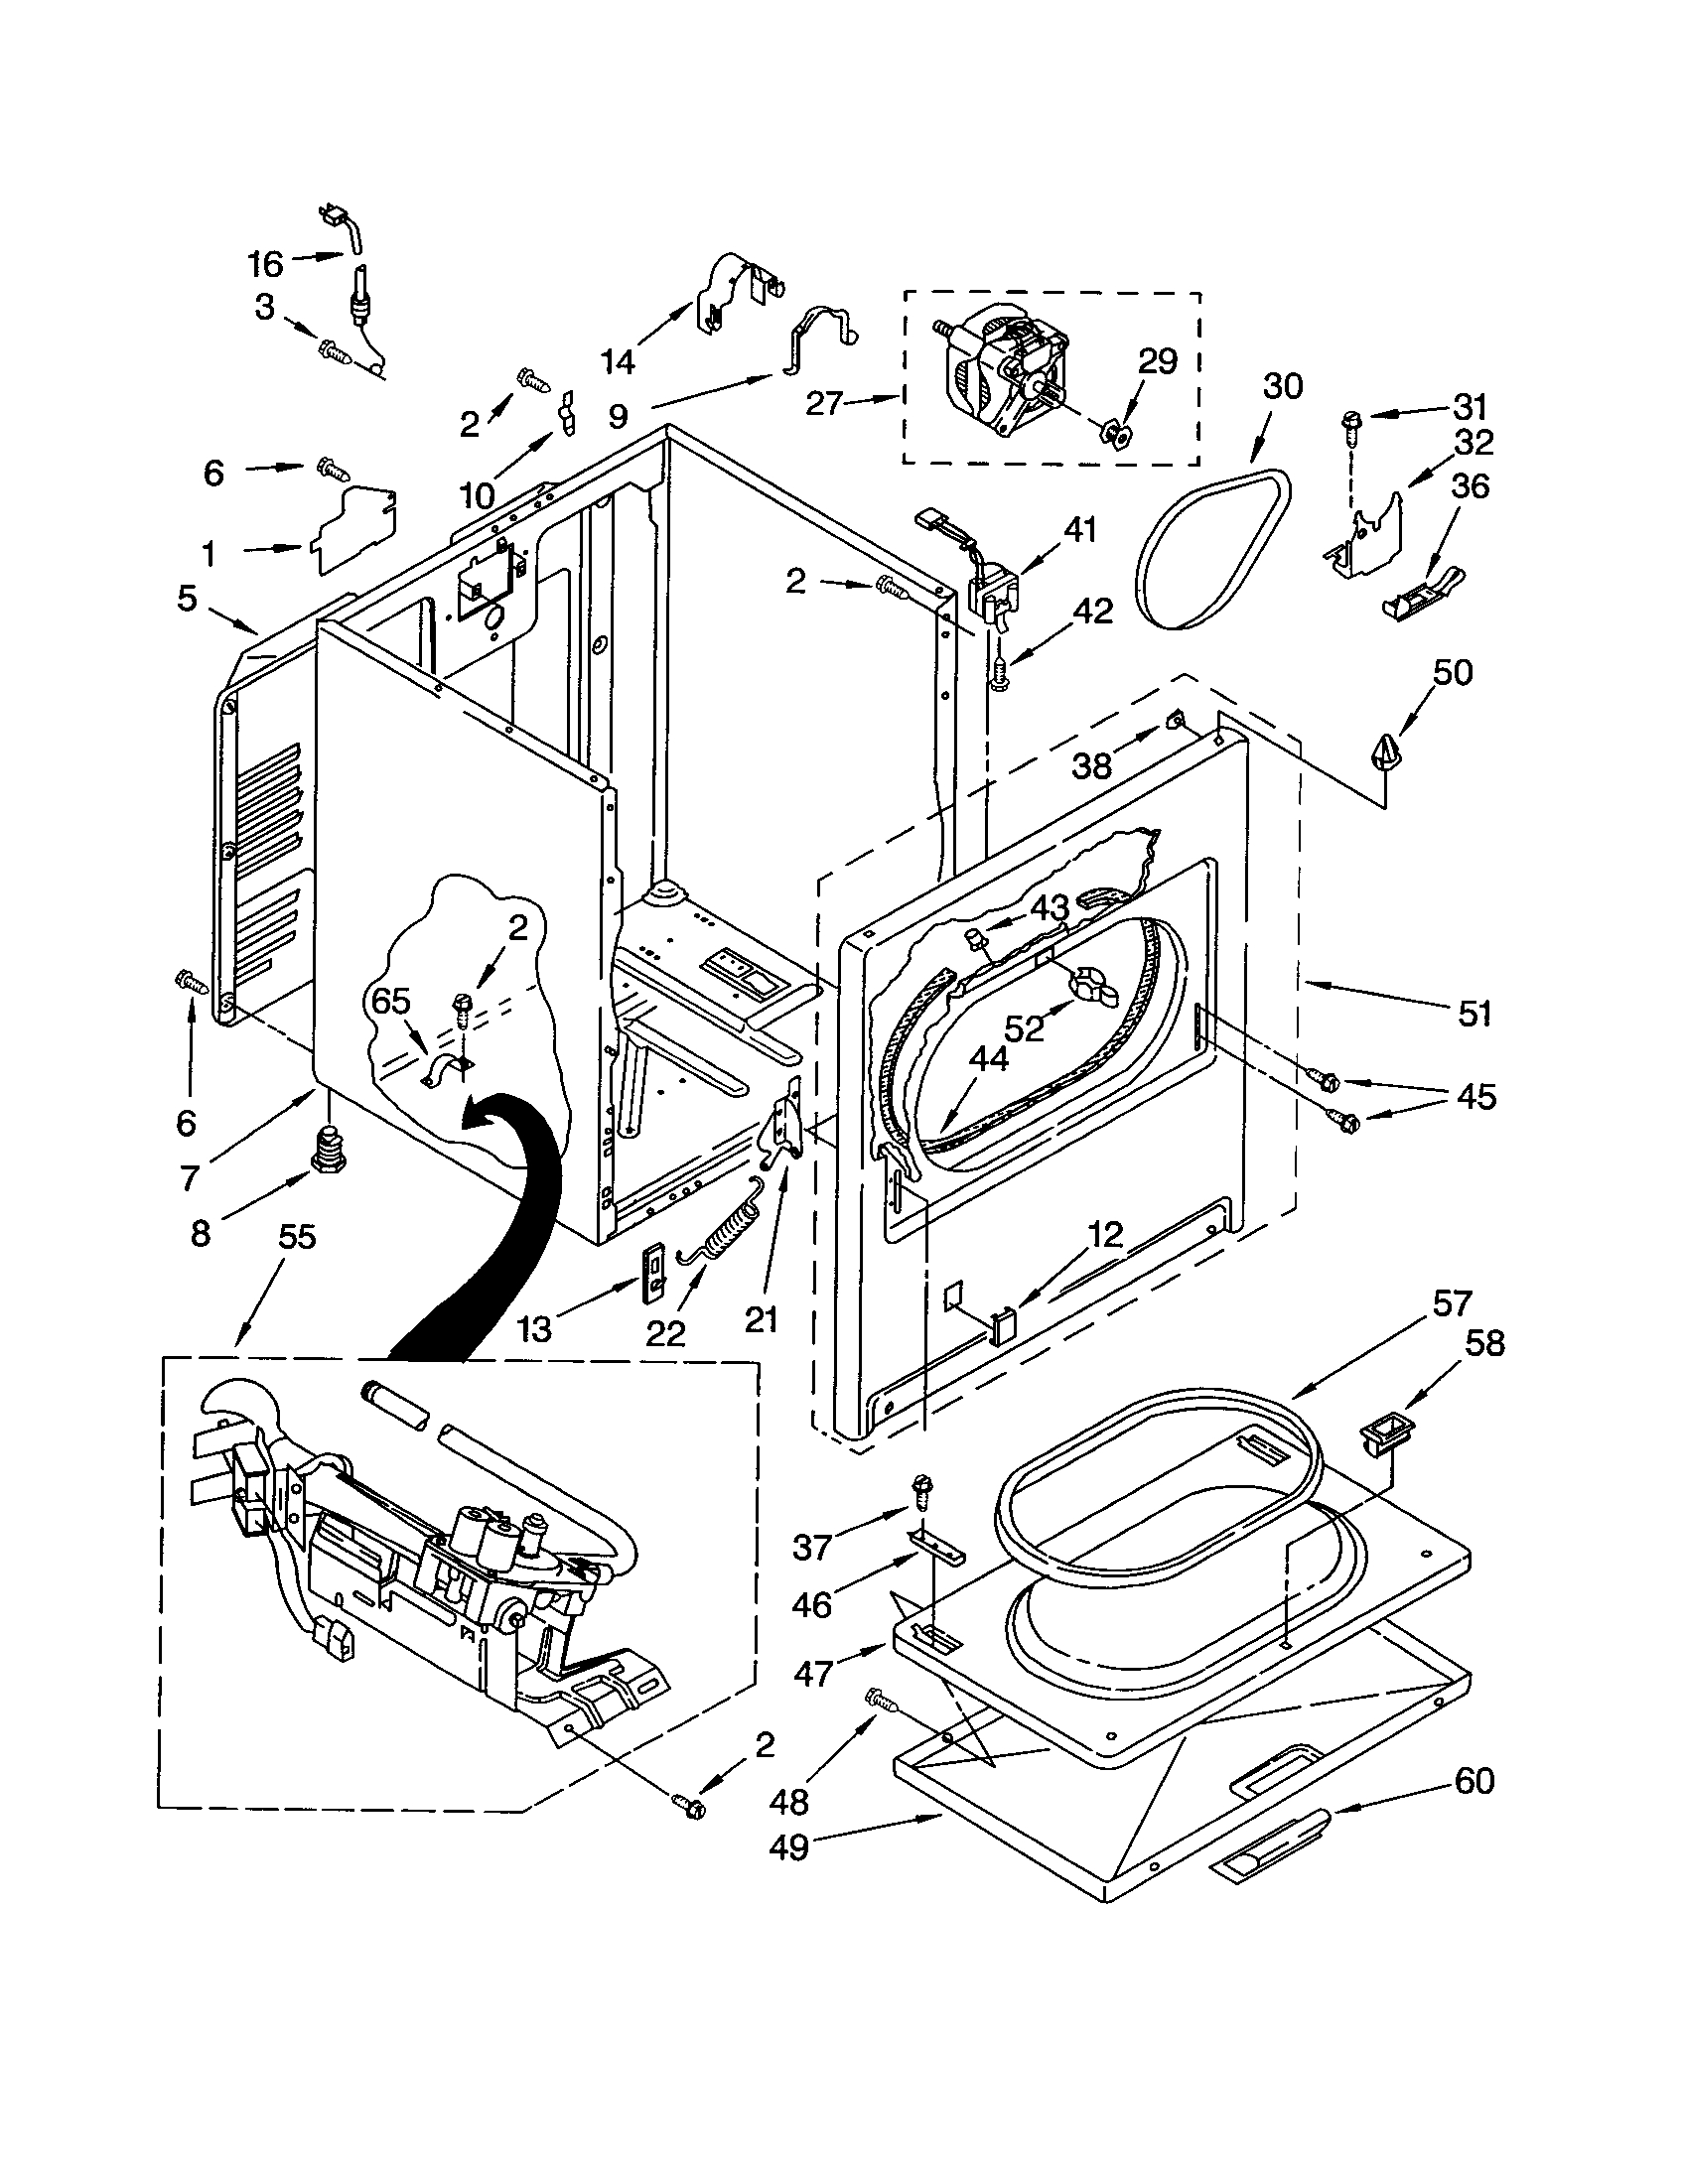 Kenmore series washer parts diagram automotive